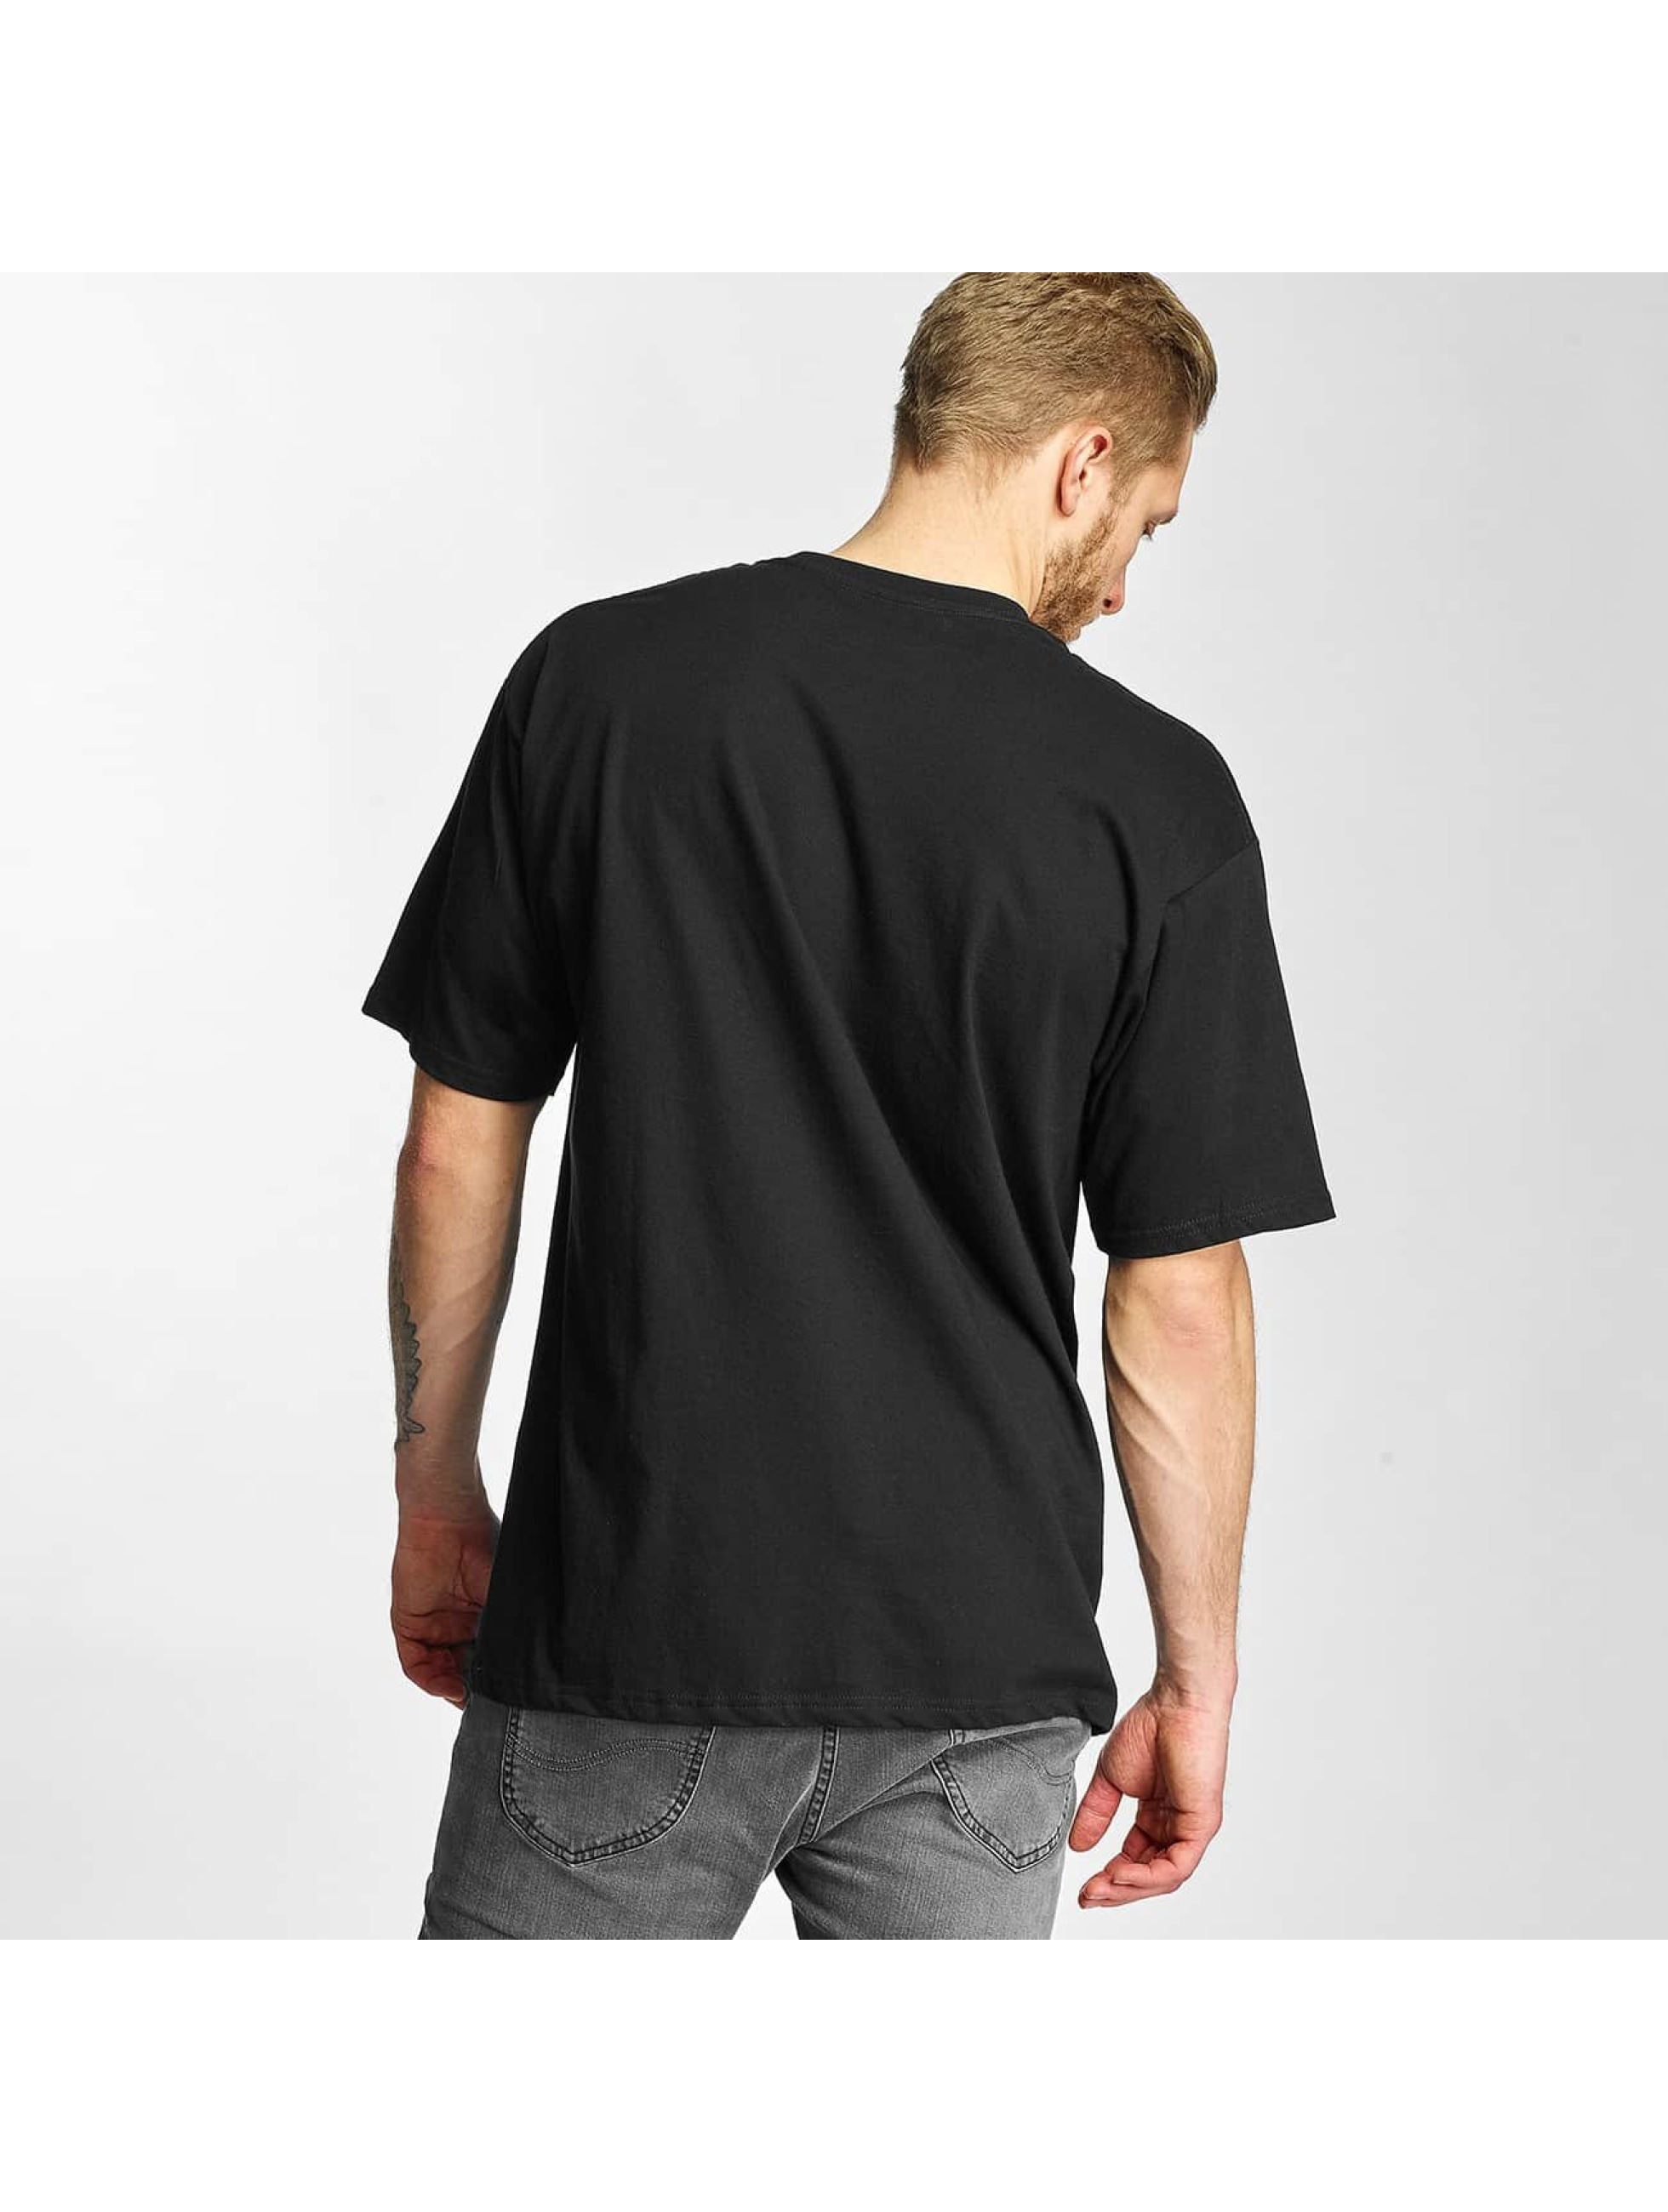 Diamond T-Shirt Strike black